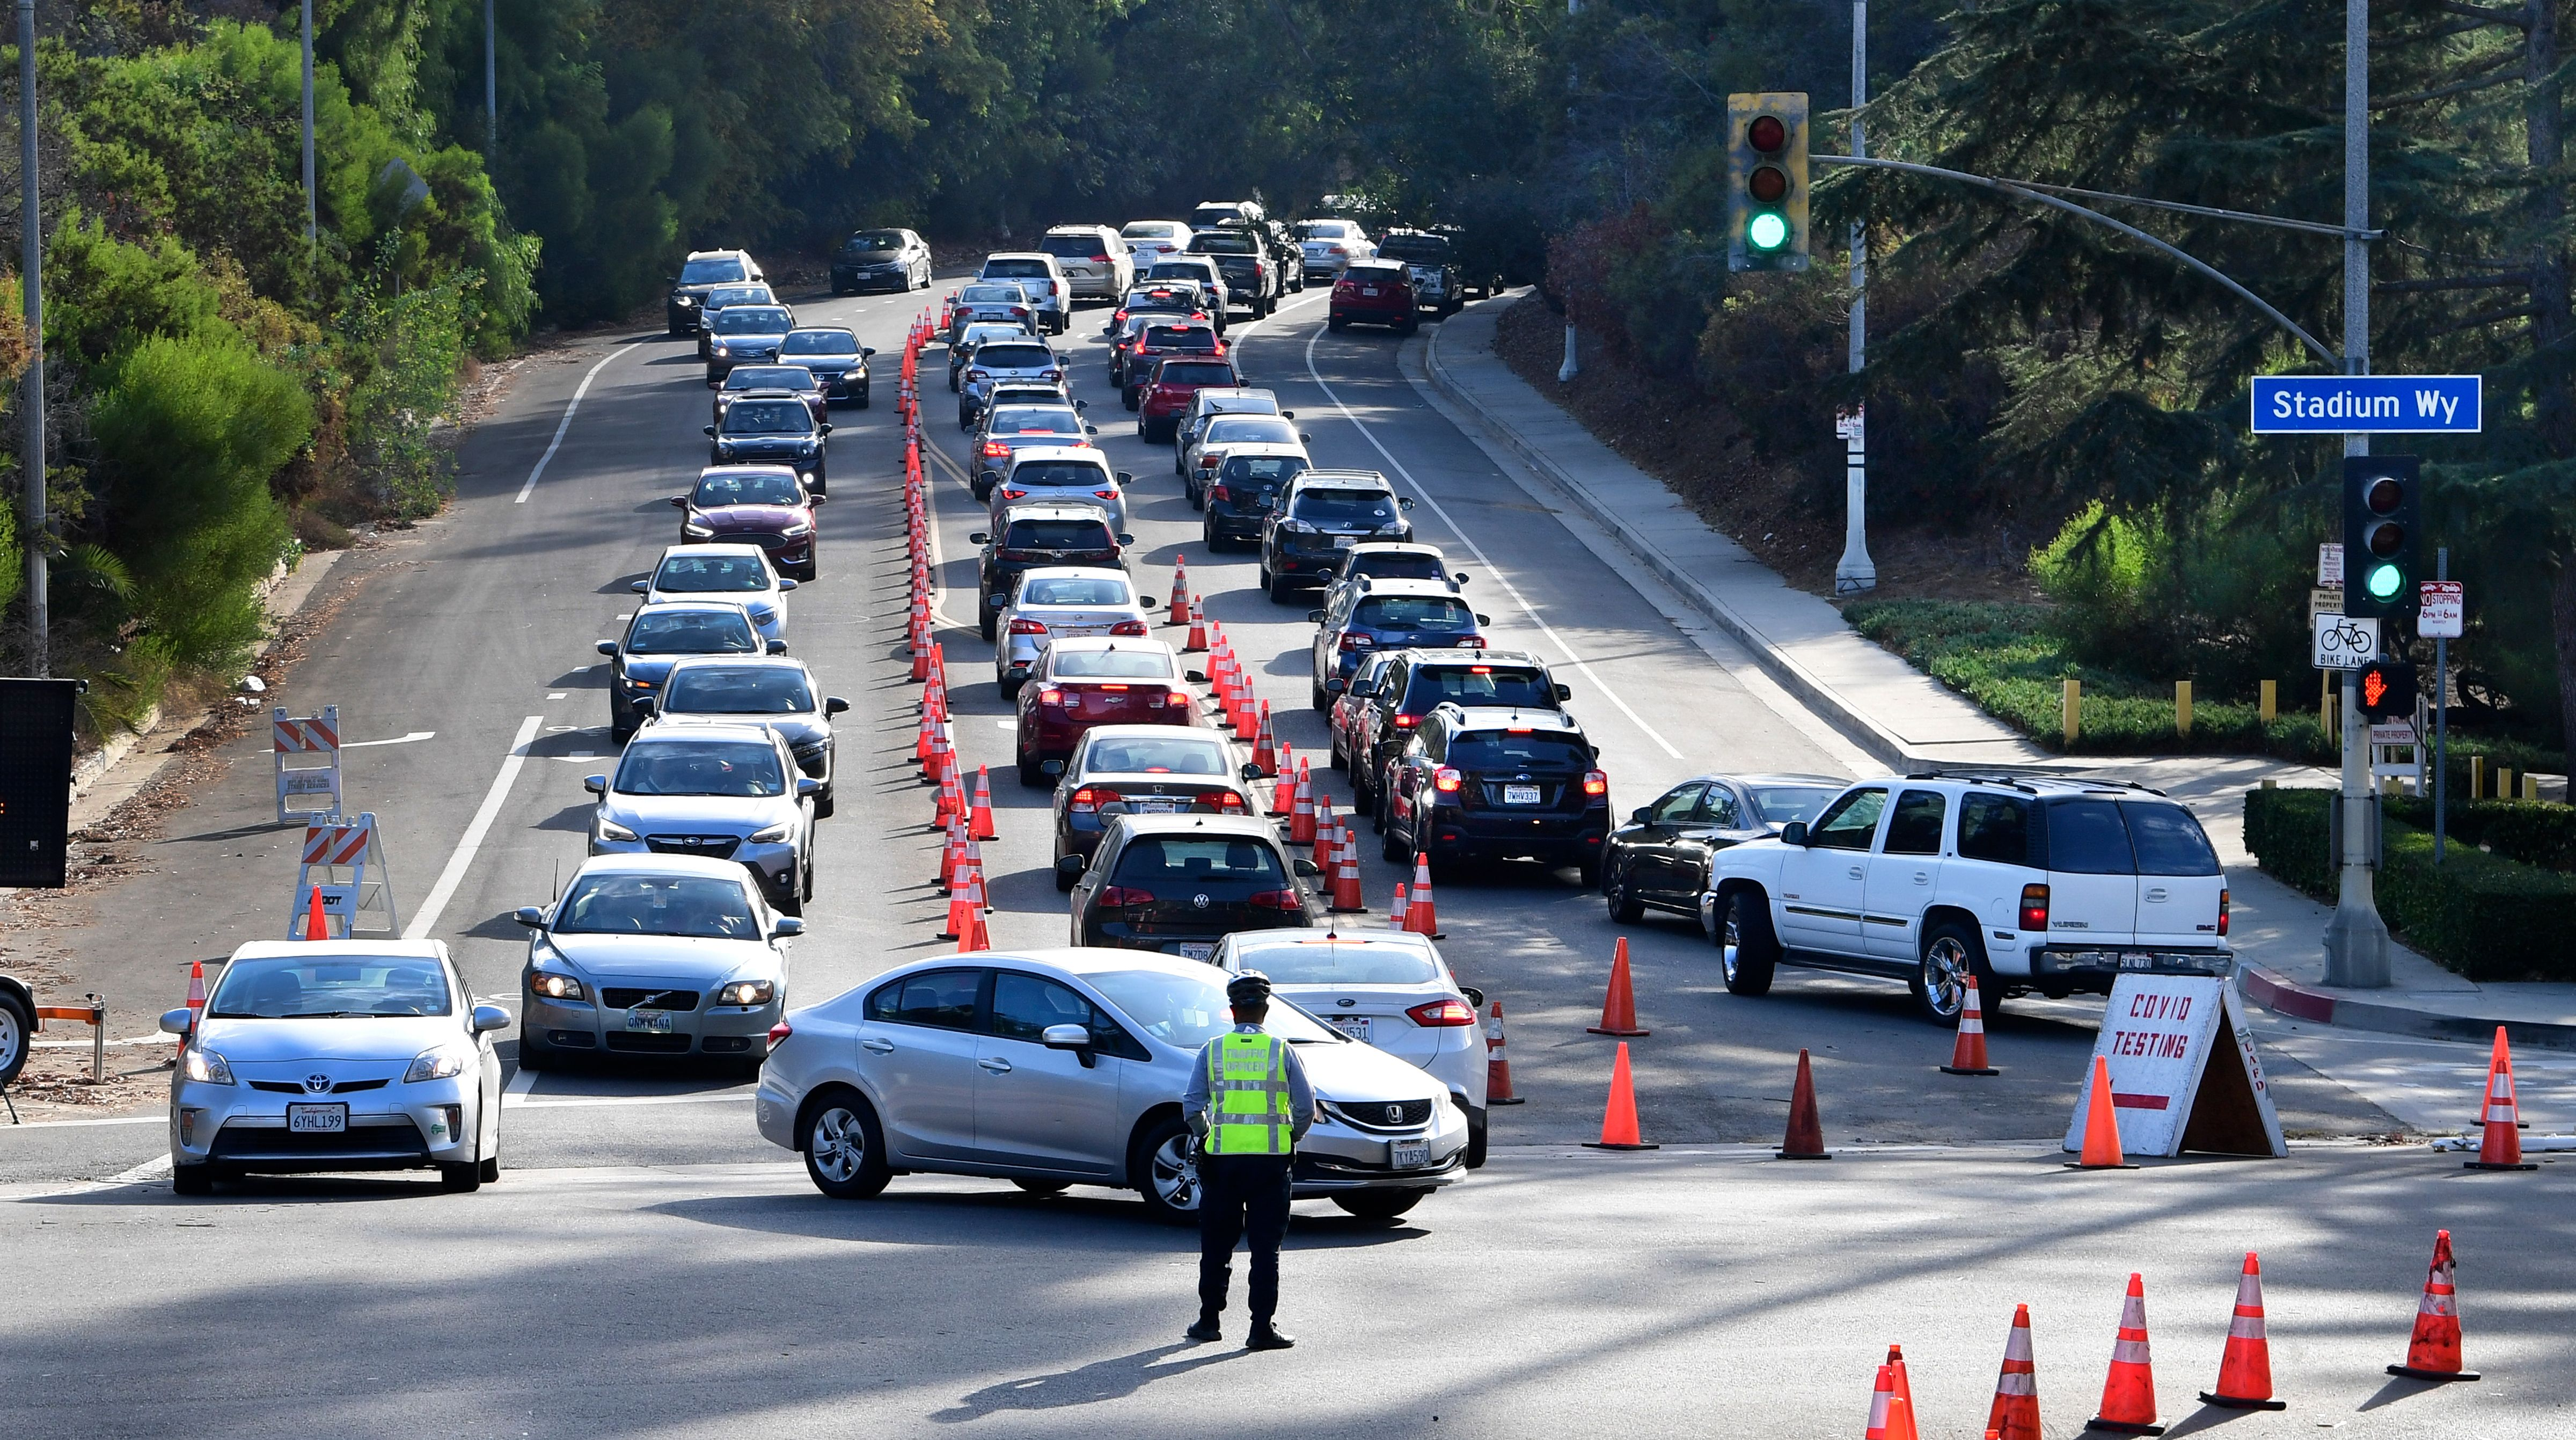 Lines of vehicles make their way to and from Dodger Stadium for Covid-19 testing on Friday, November 20, in Los Angeles.